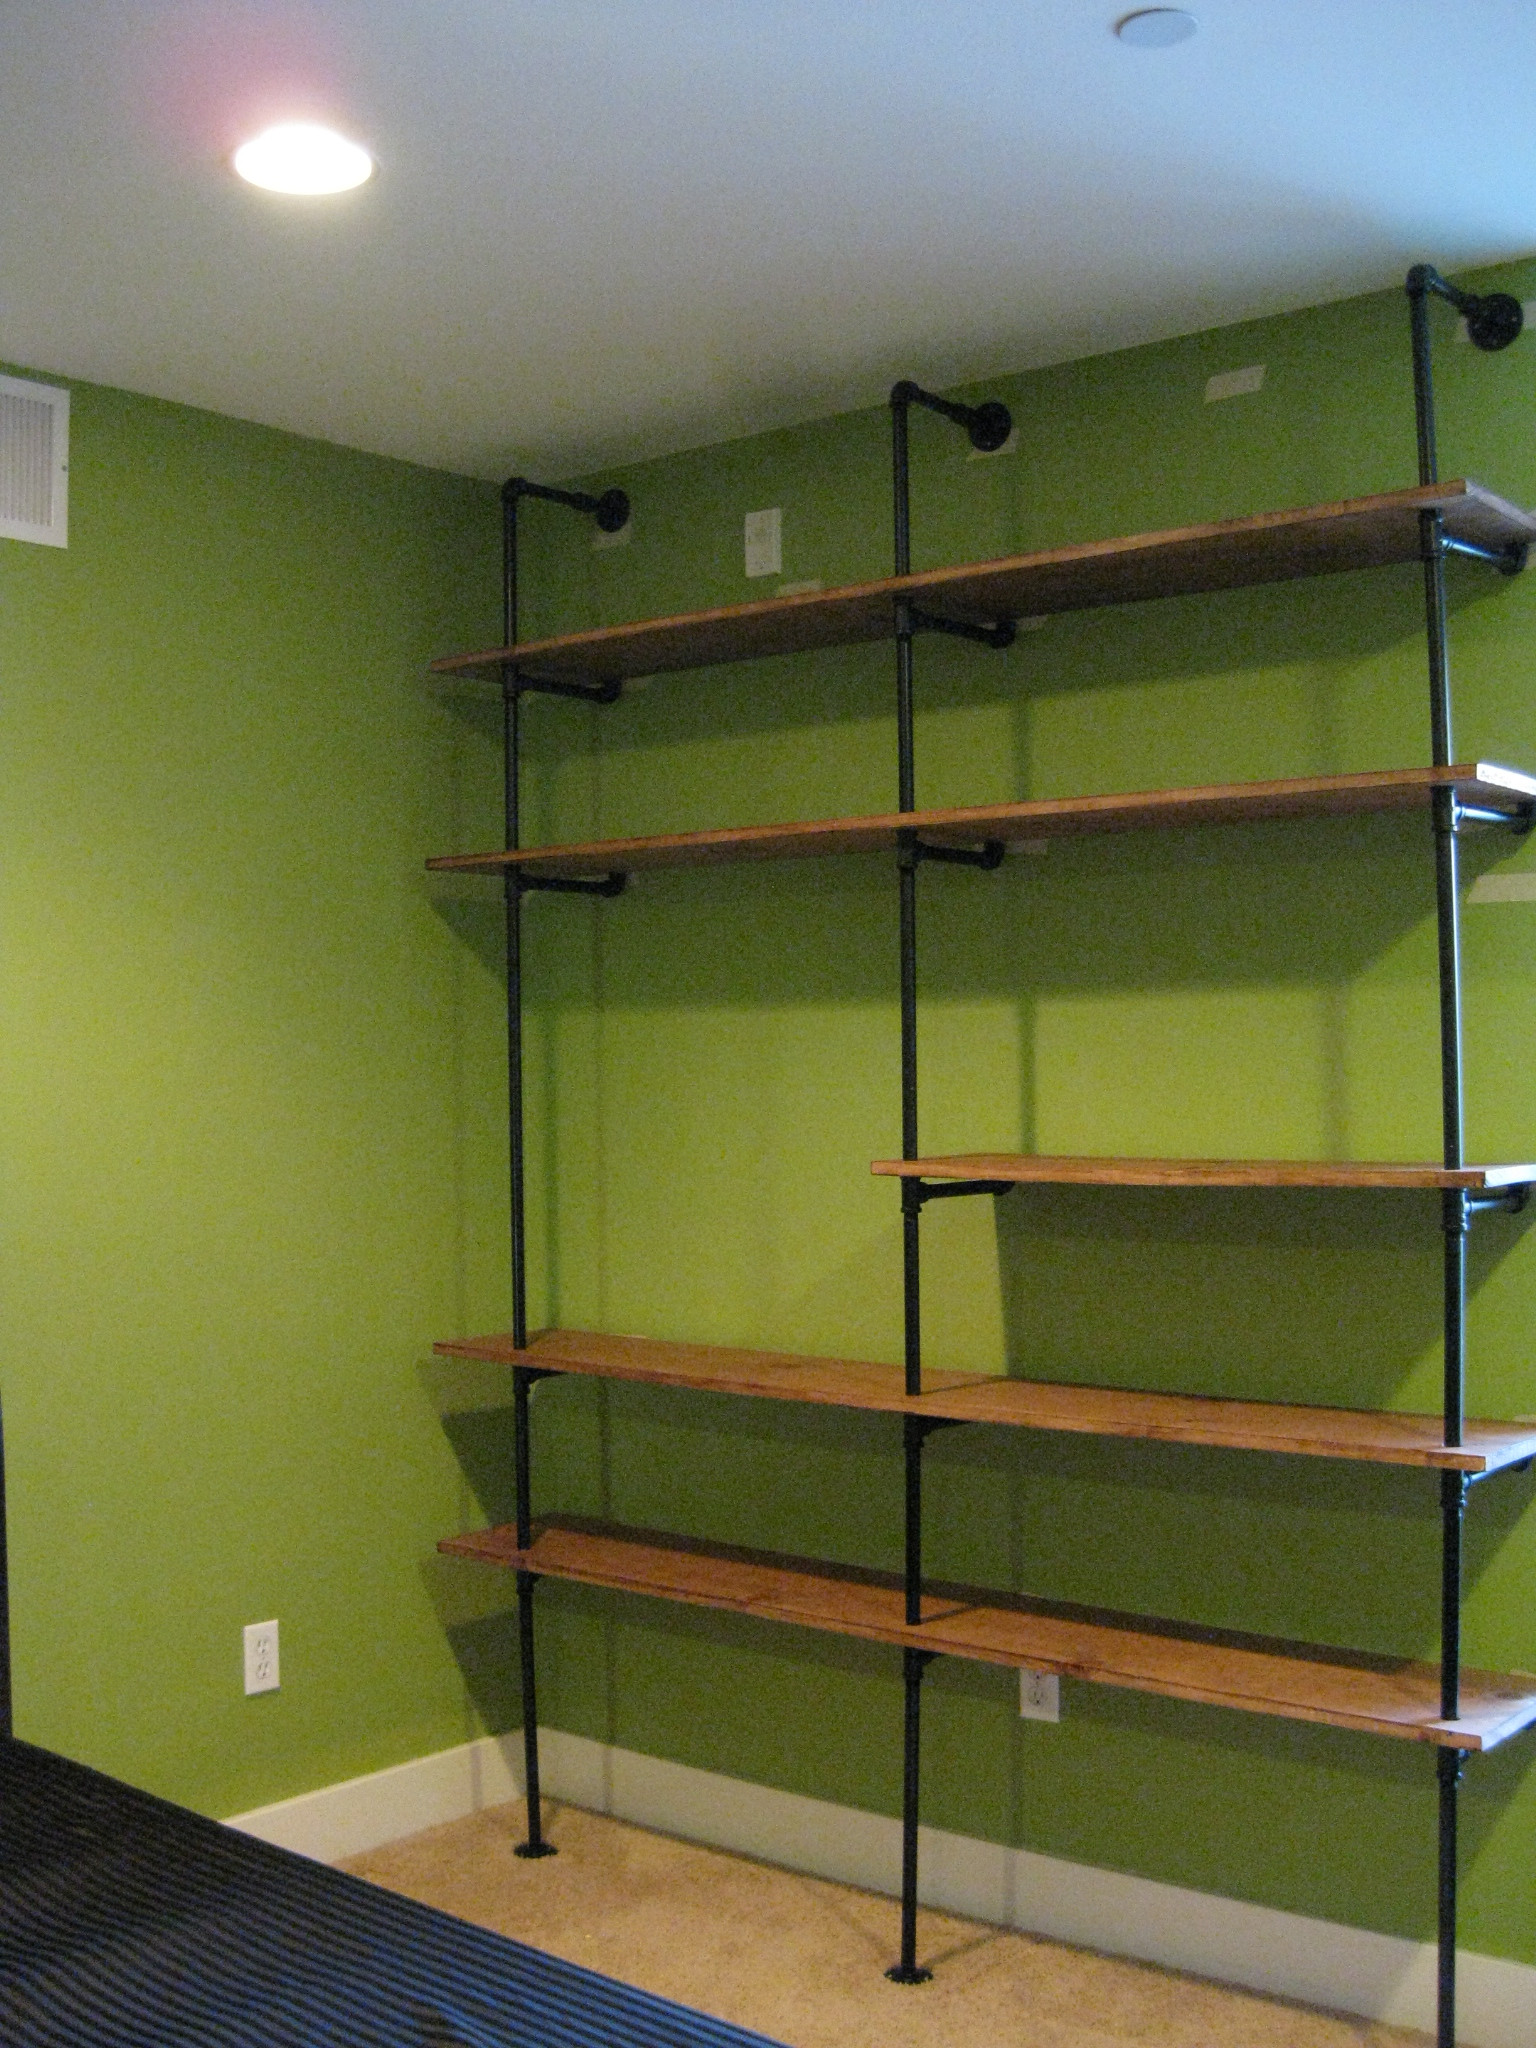 Best ideas about Pipe Shelves DIY . Save or Pin DIY Pipe Shelving — the overly detailed tutorial Now.